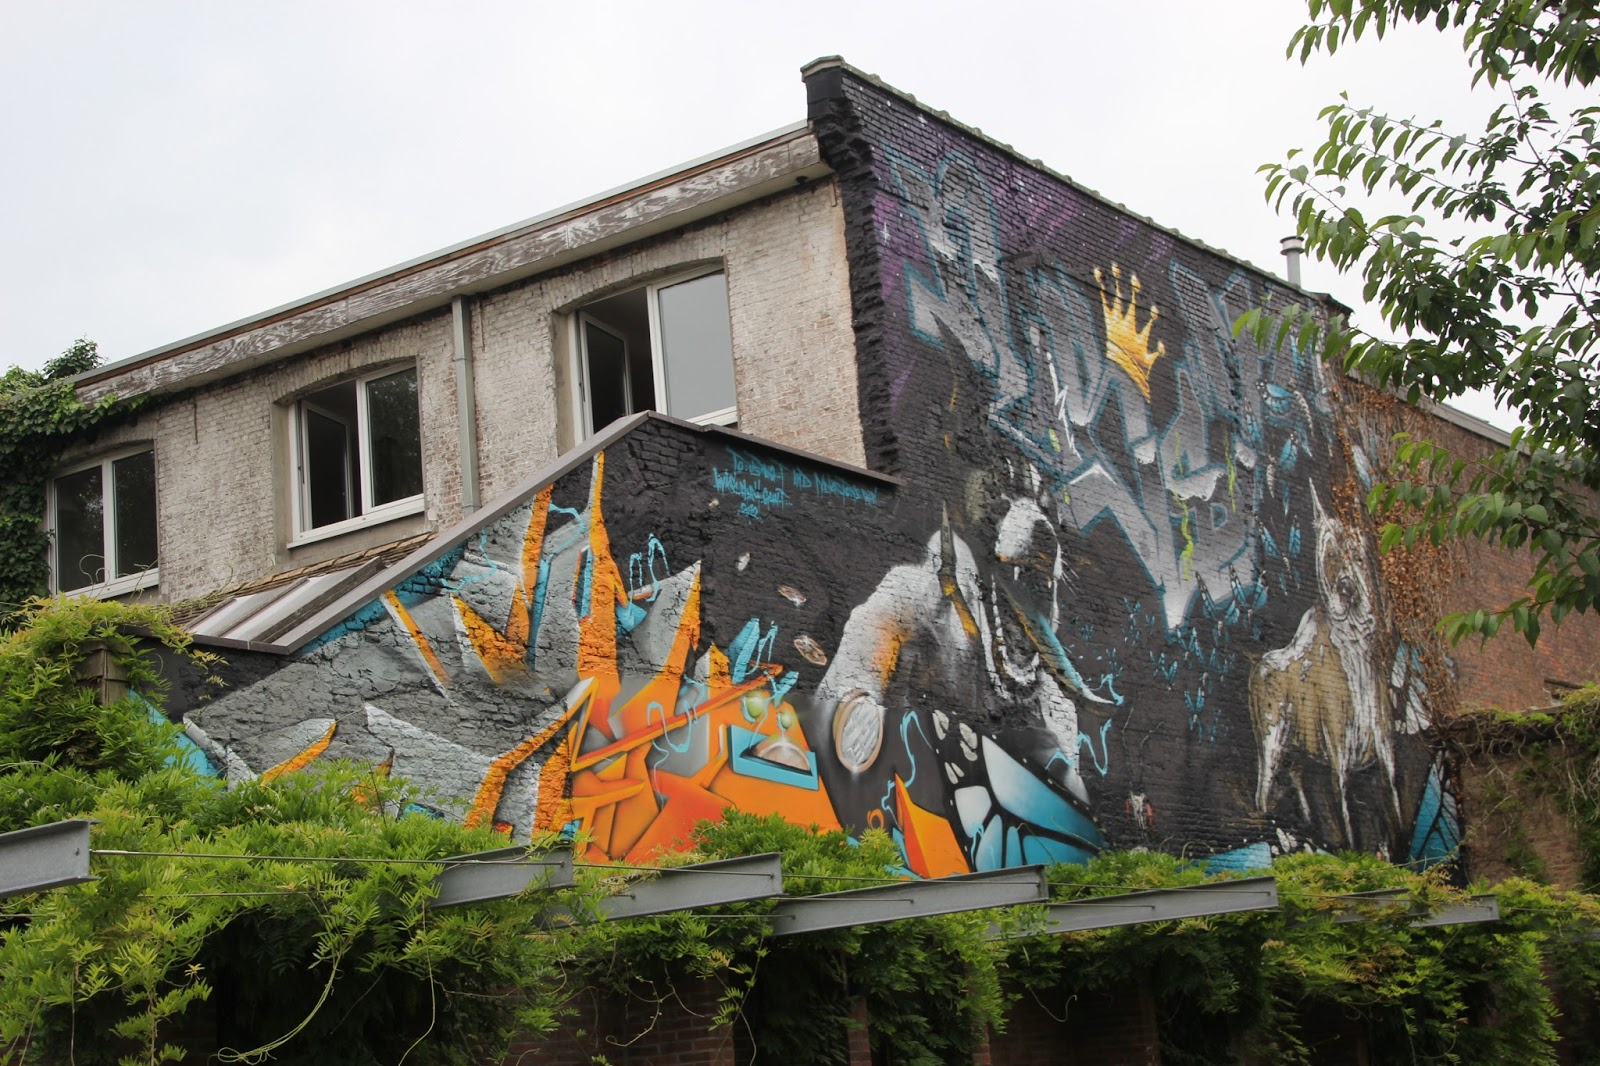 A Guide Of Where To See Graffiti In Antwerp